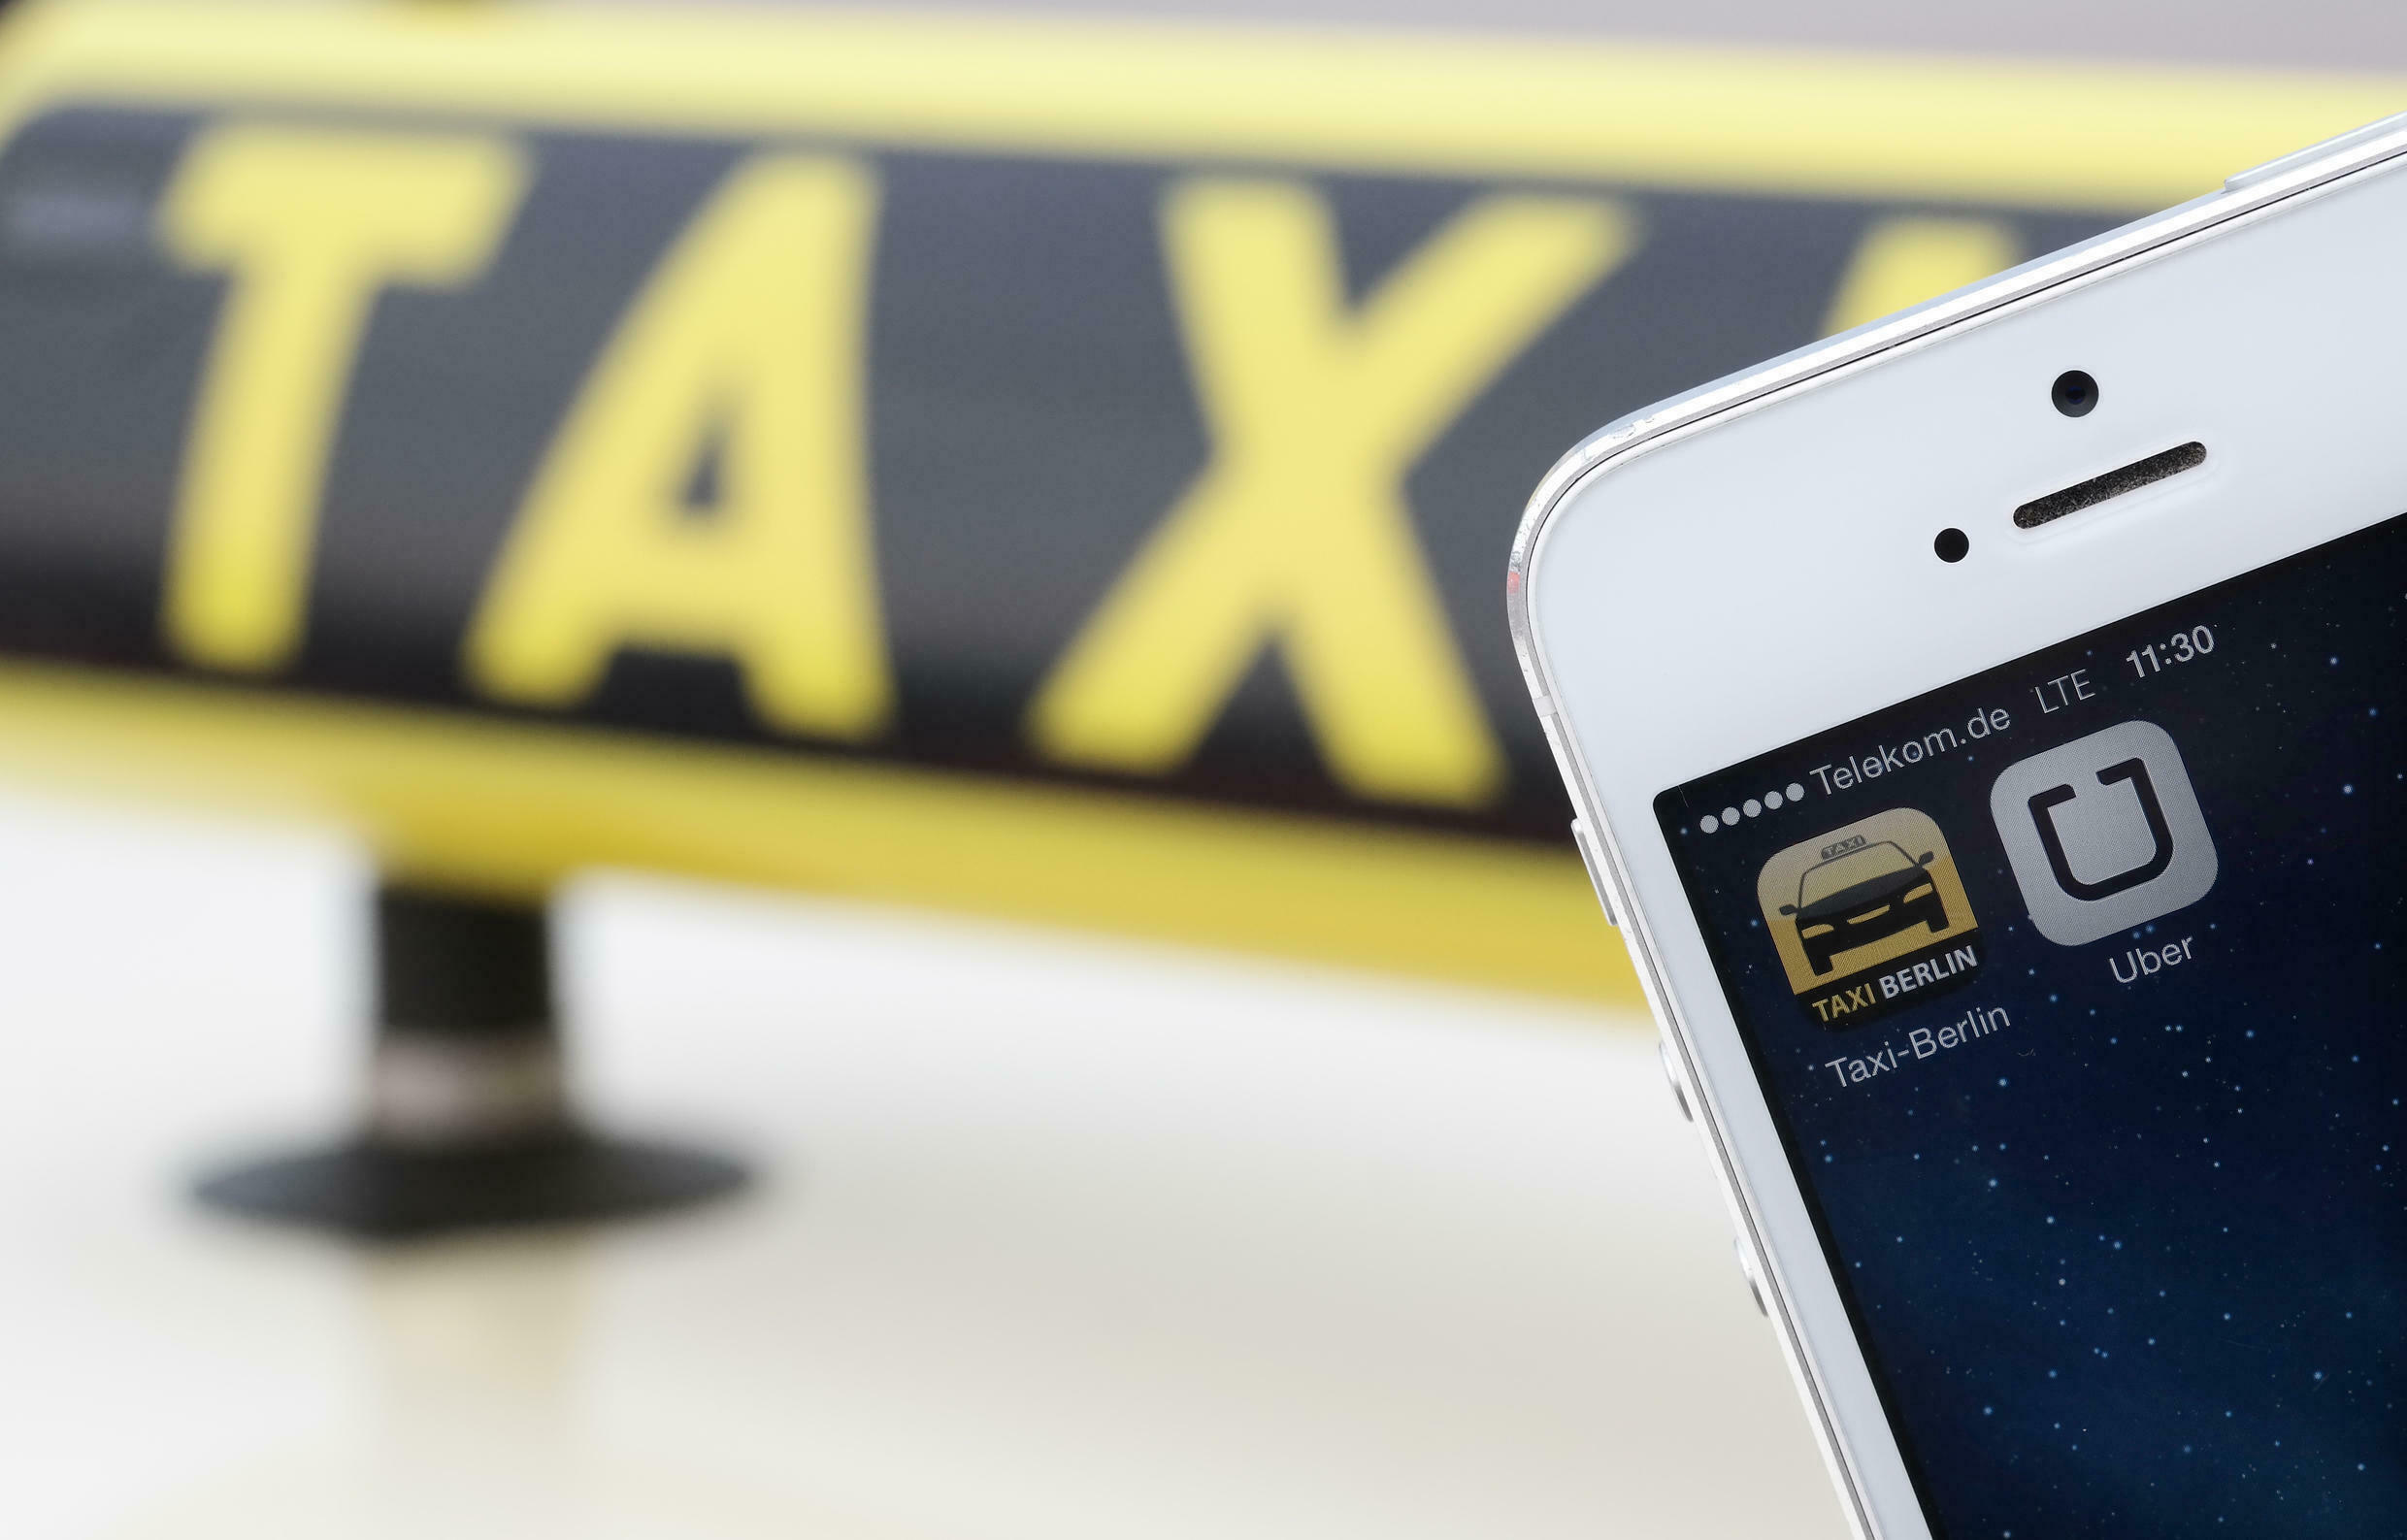 The app 'Uber' on a display of a smartphone in front of a taxi.